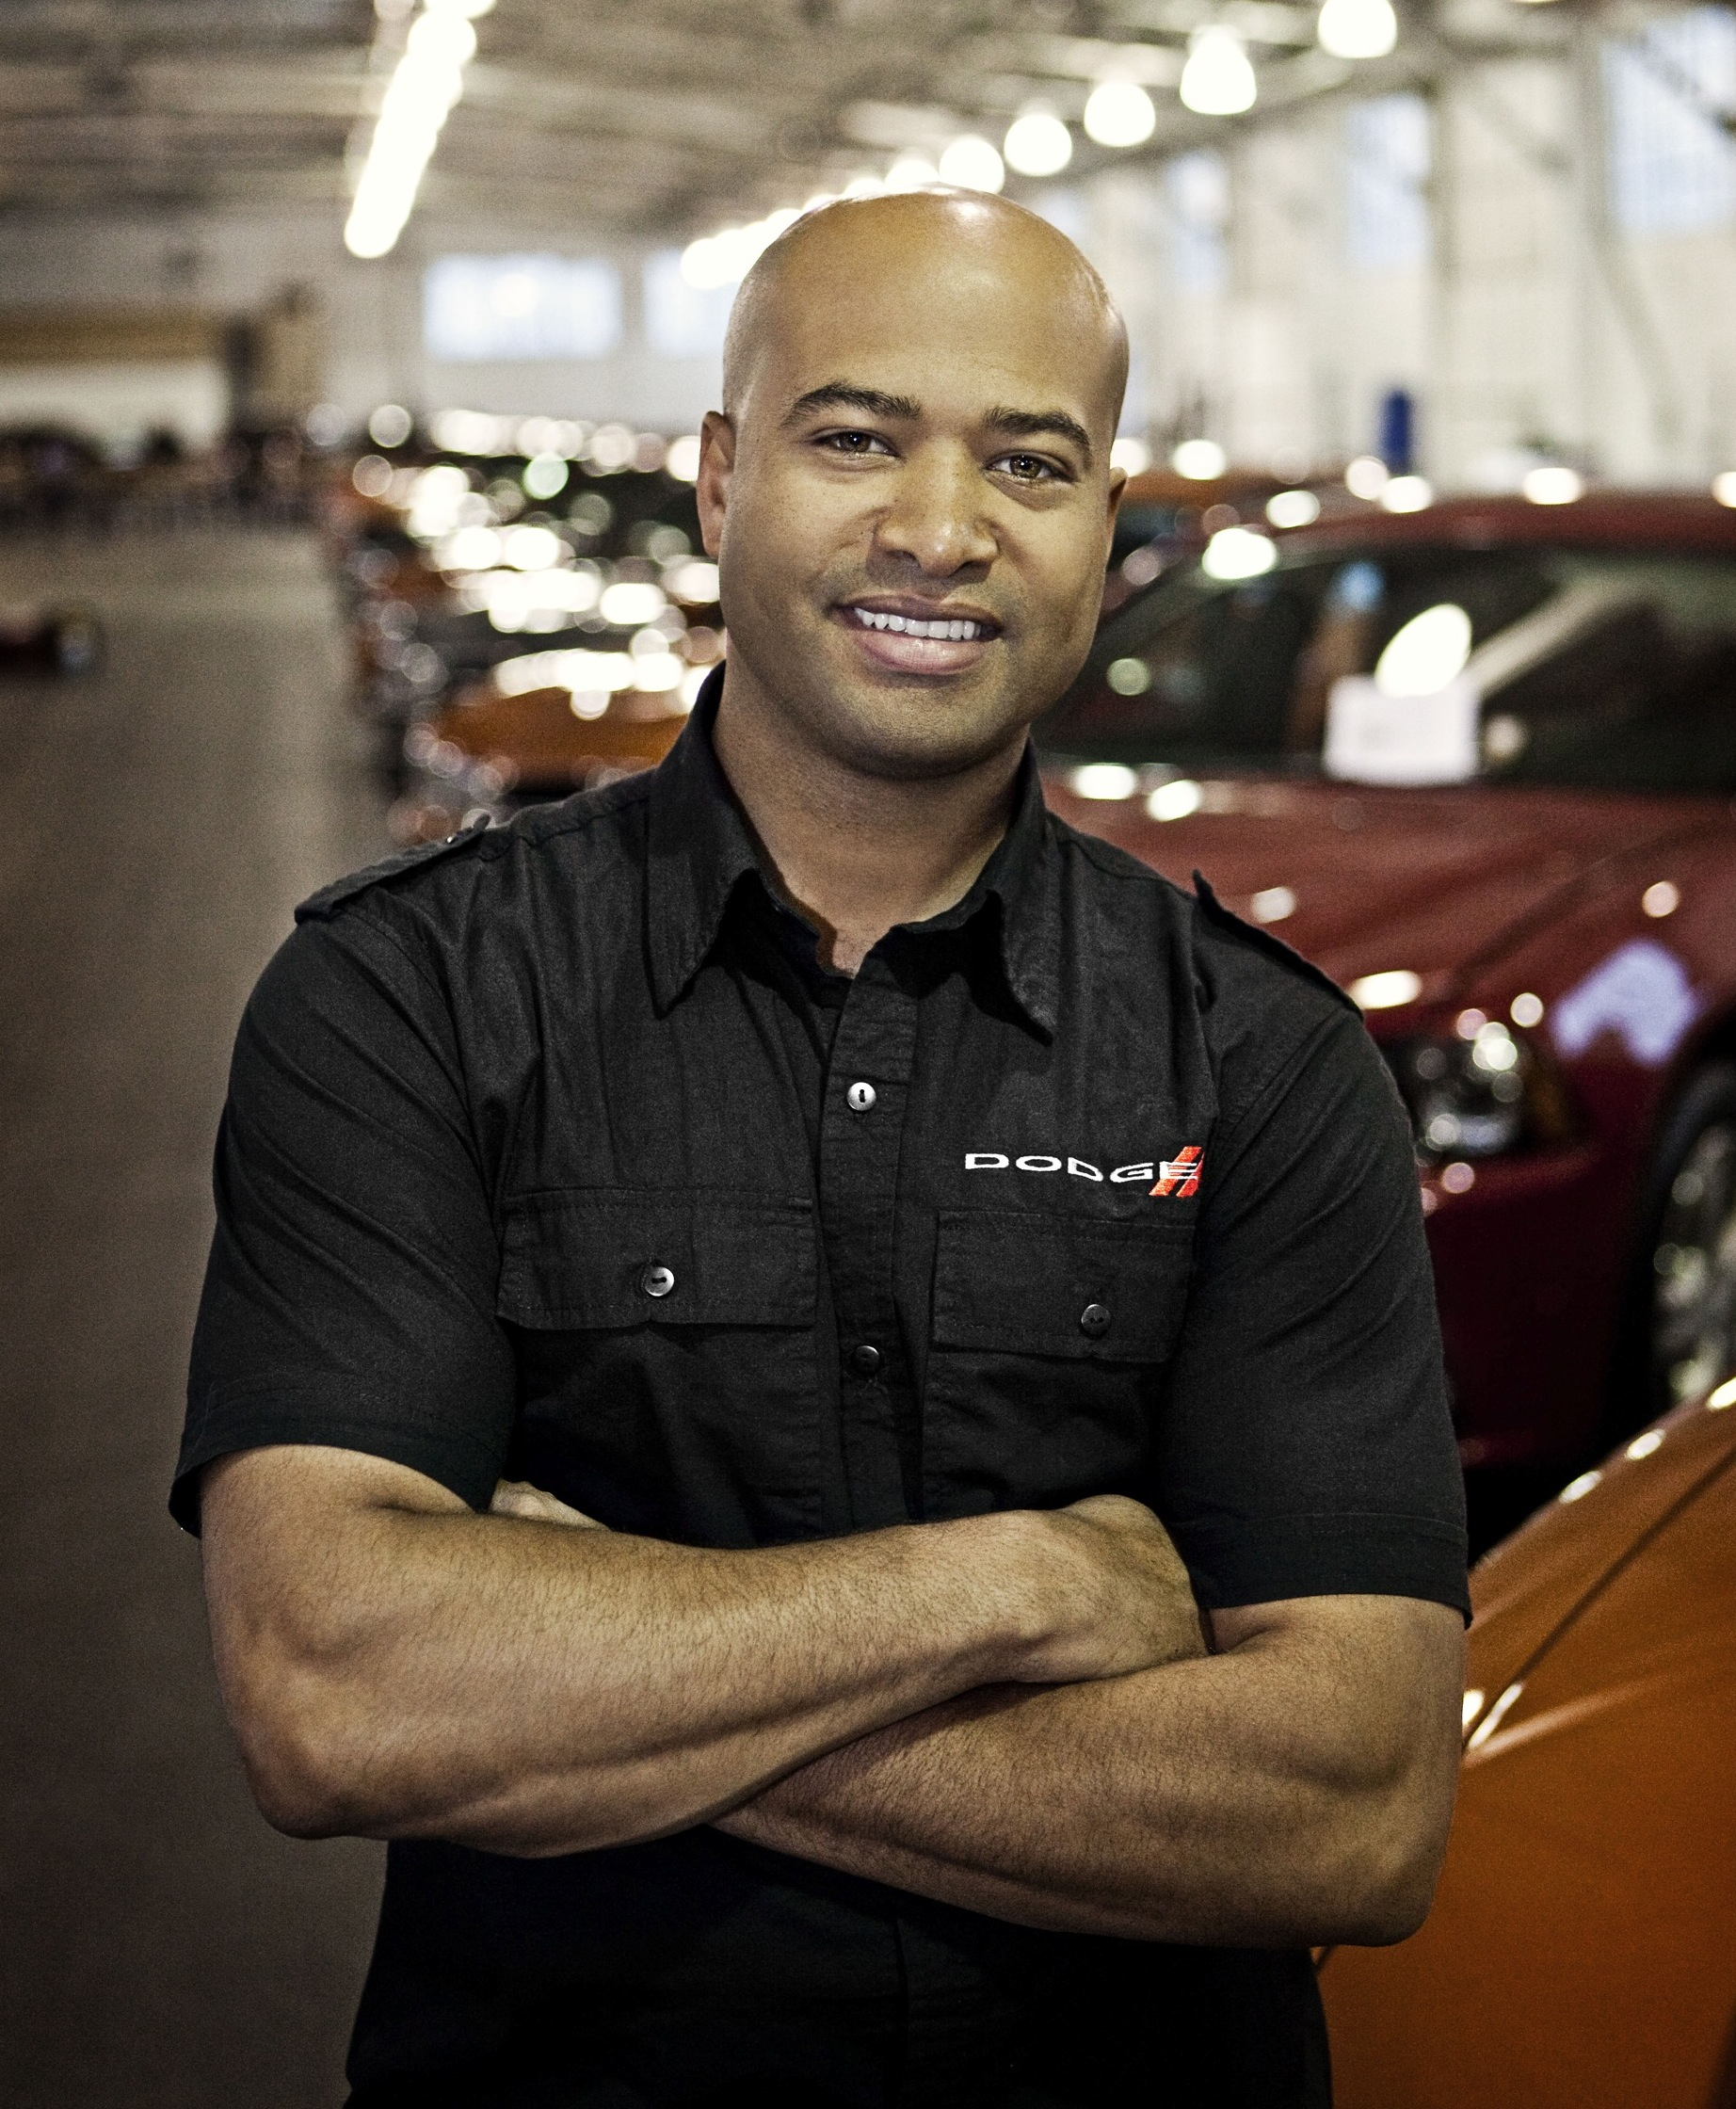 SRT Brand President & CEO and Chrysler Group SVP of Design Ralph Gilles (Image: Courtesy of Subject)